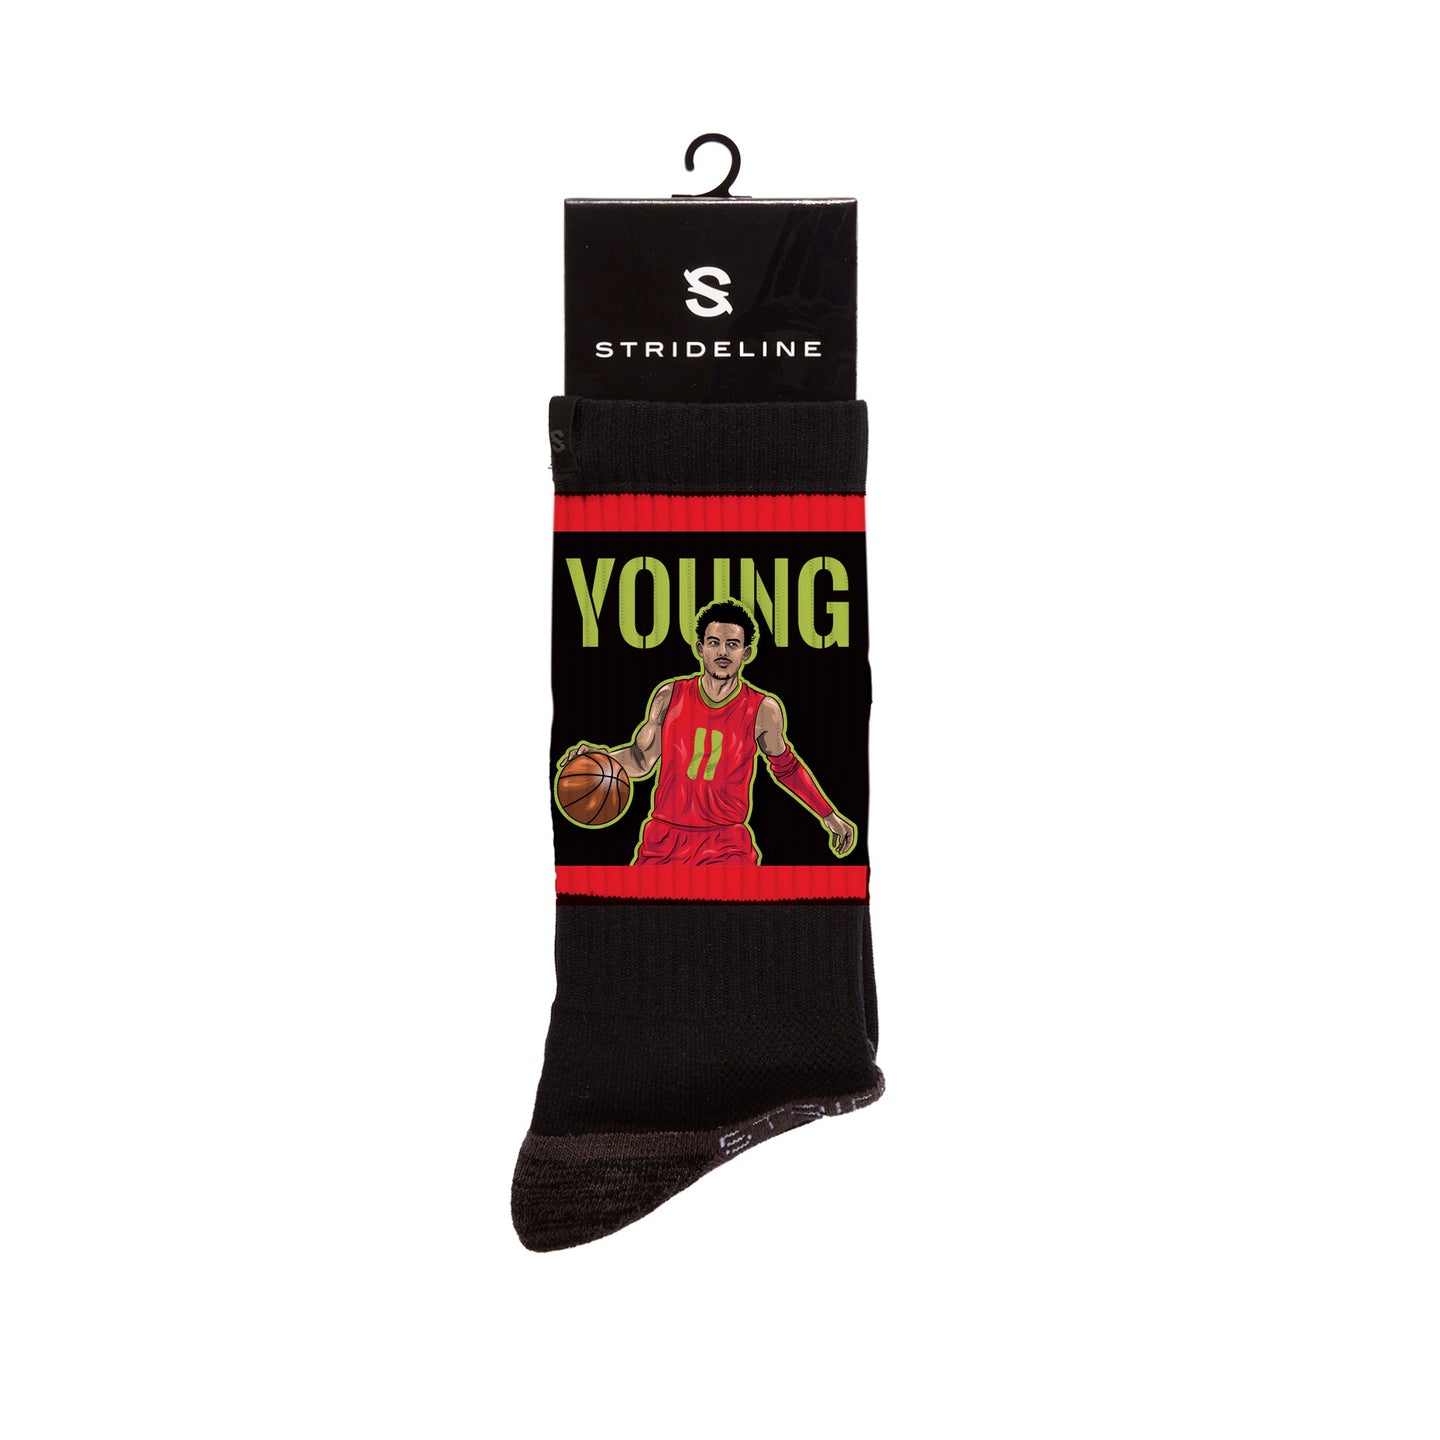 Trae Young Handels Black Crew Socks